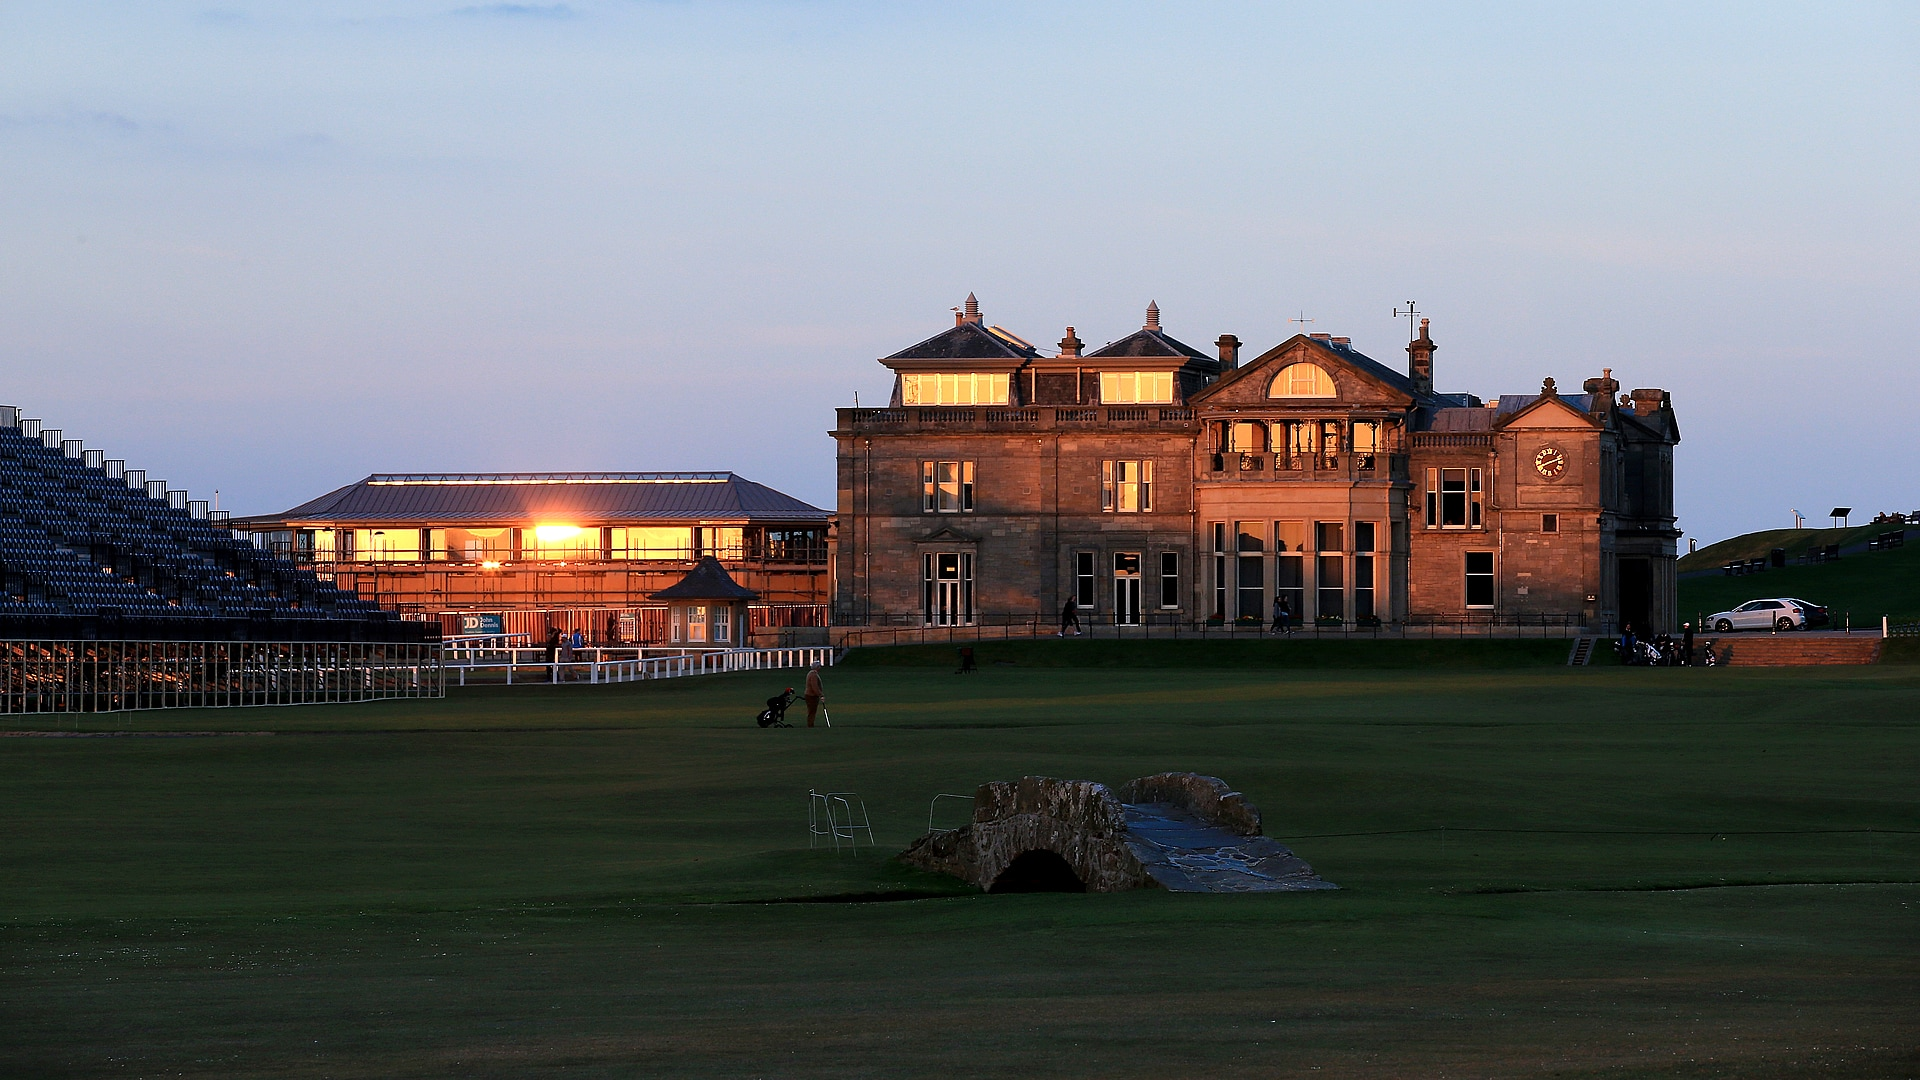 R&A clubhouse on the Old Course at St. Andrews.